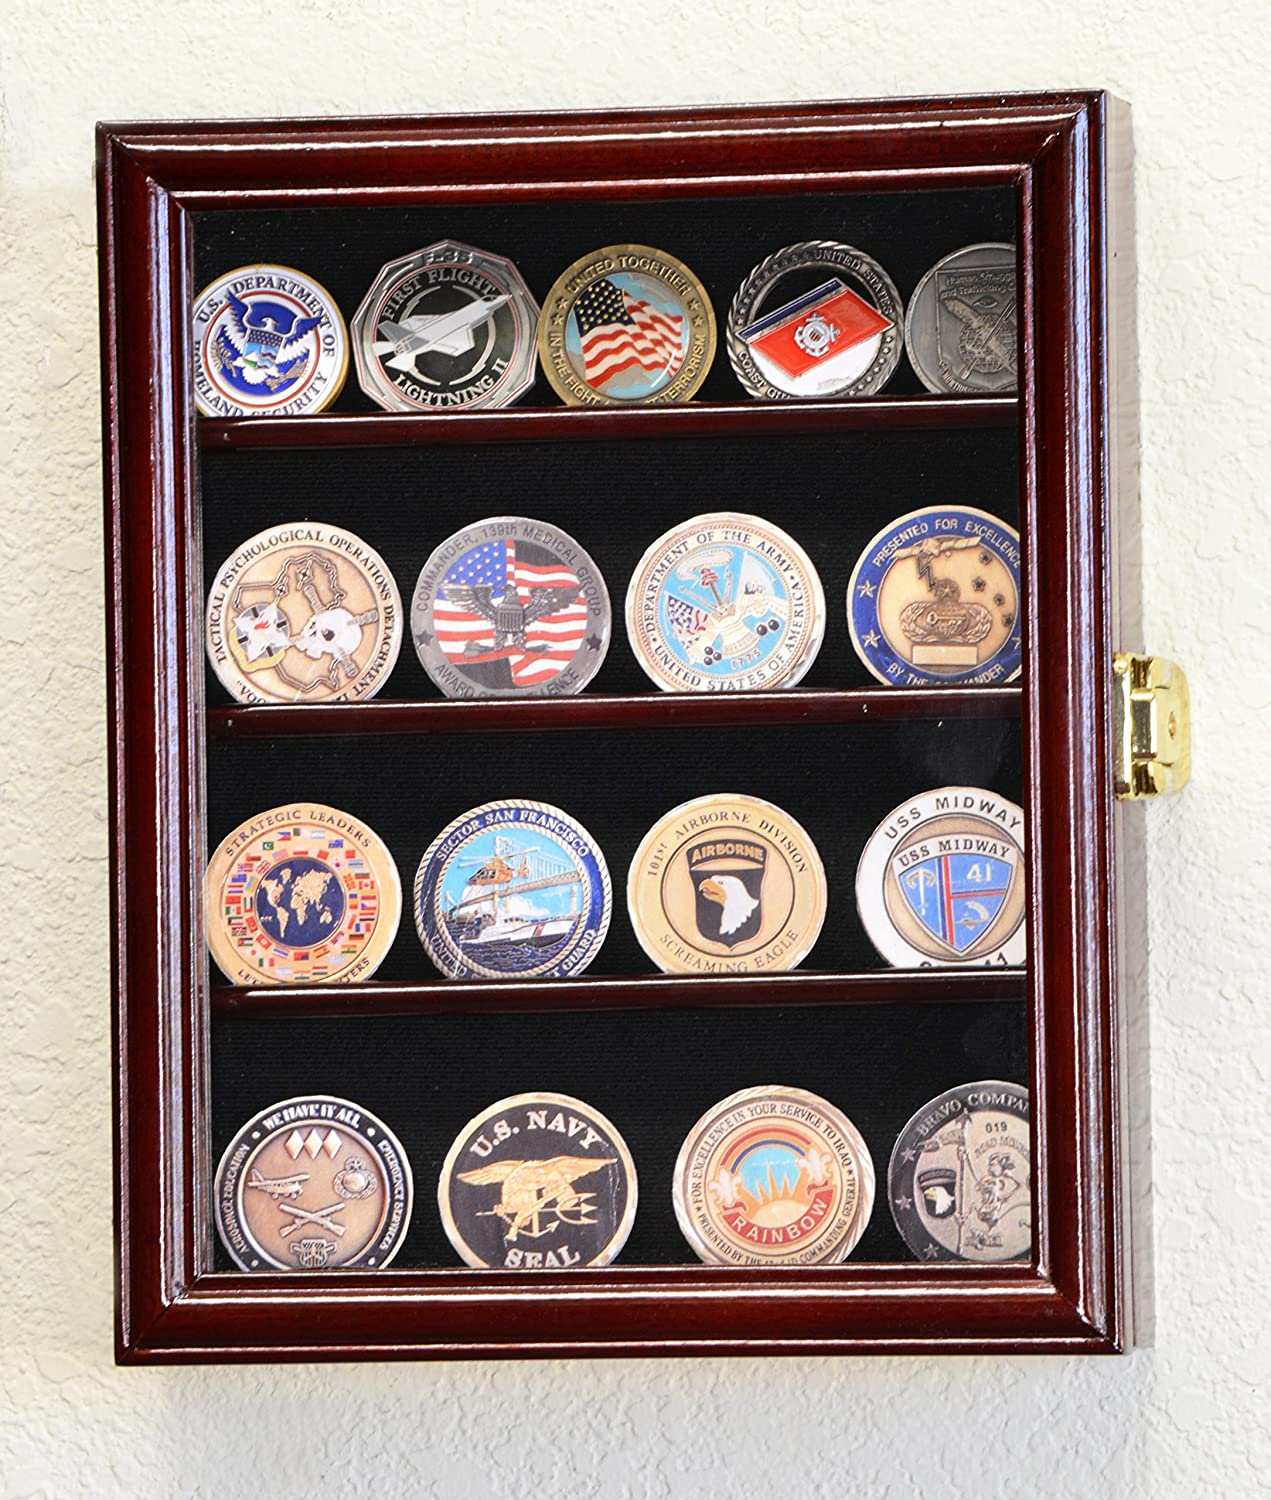 XS Military Challenge Coin Display Case Cabinet Holder Rack Box w/UV Protection -Cherry Finish